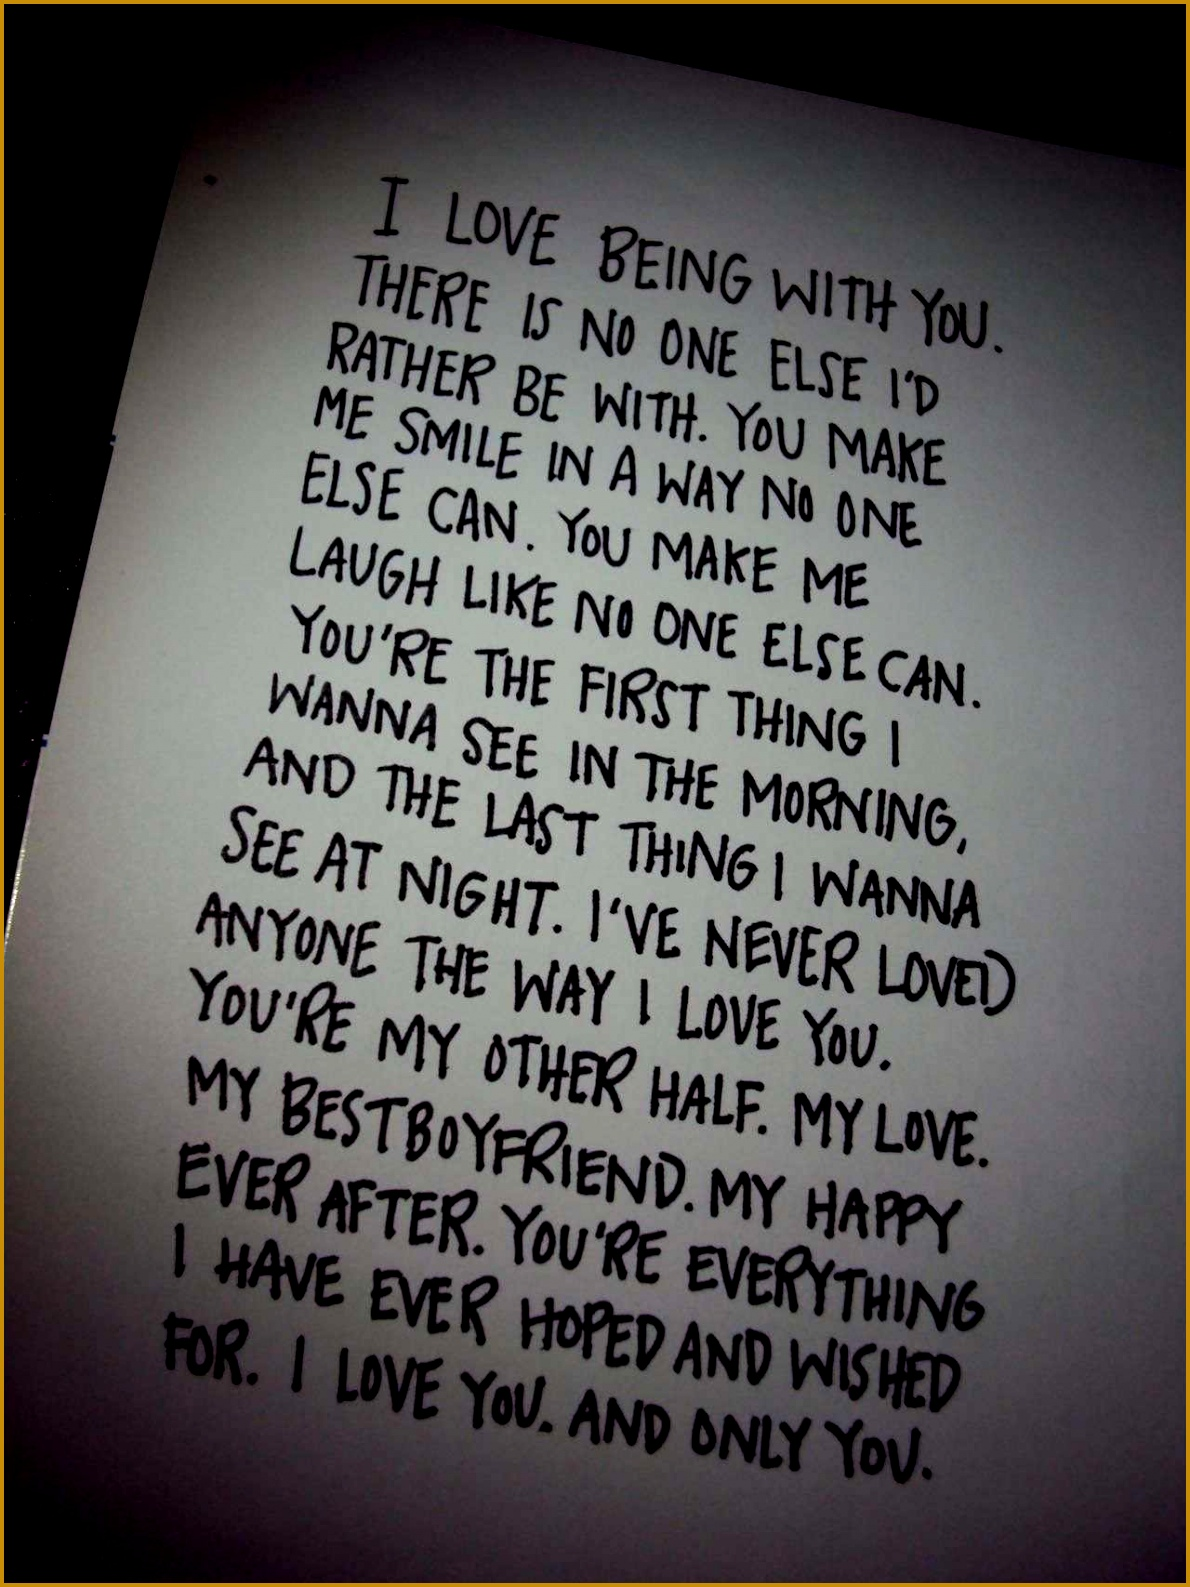 Feel like this with my boyfriend Love him so much Such a cute couple quote Wrote 15871190